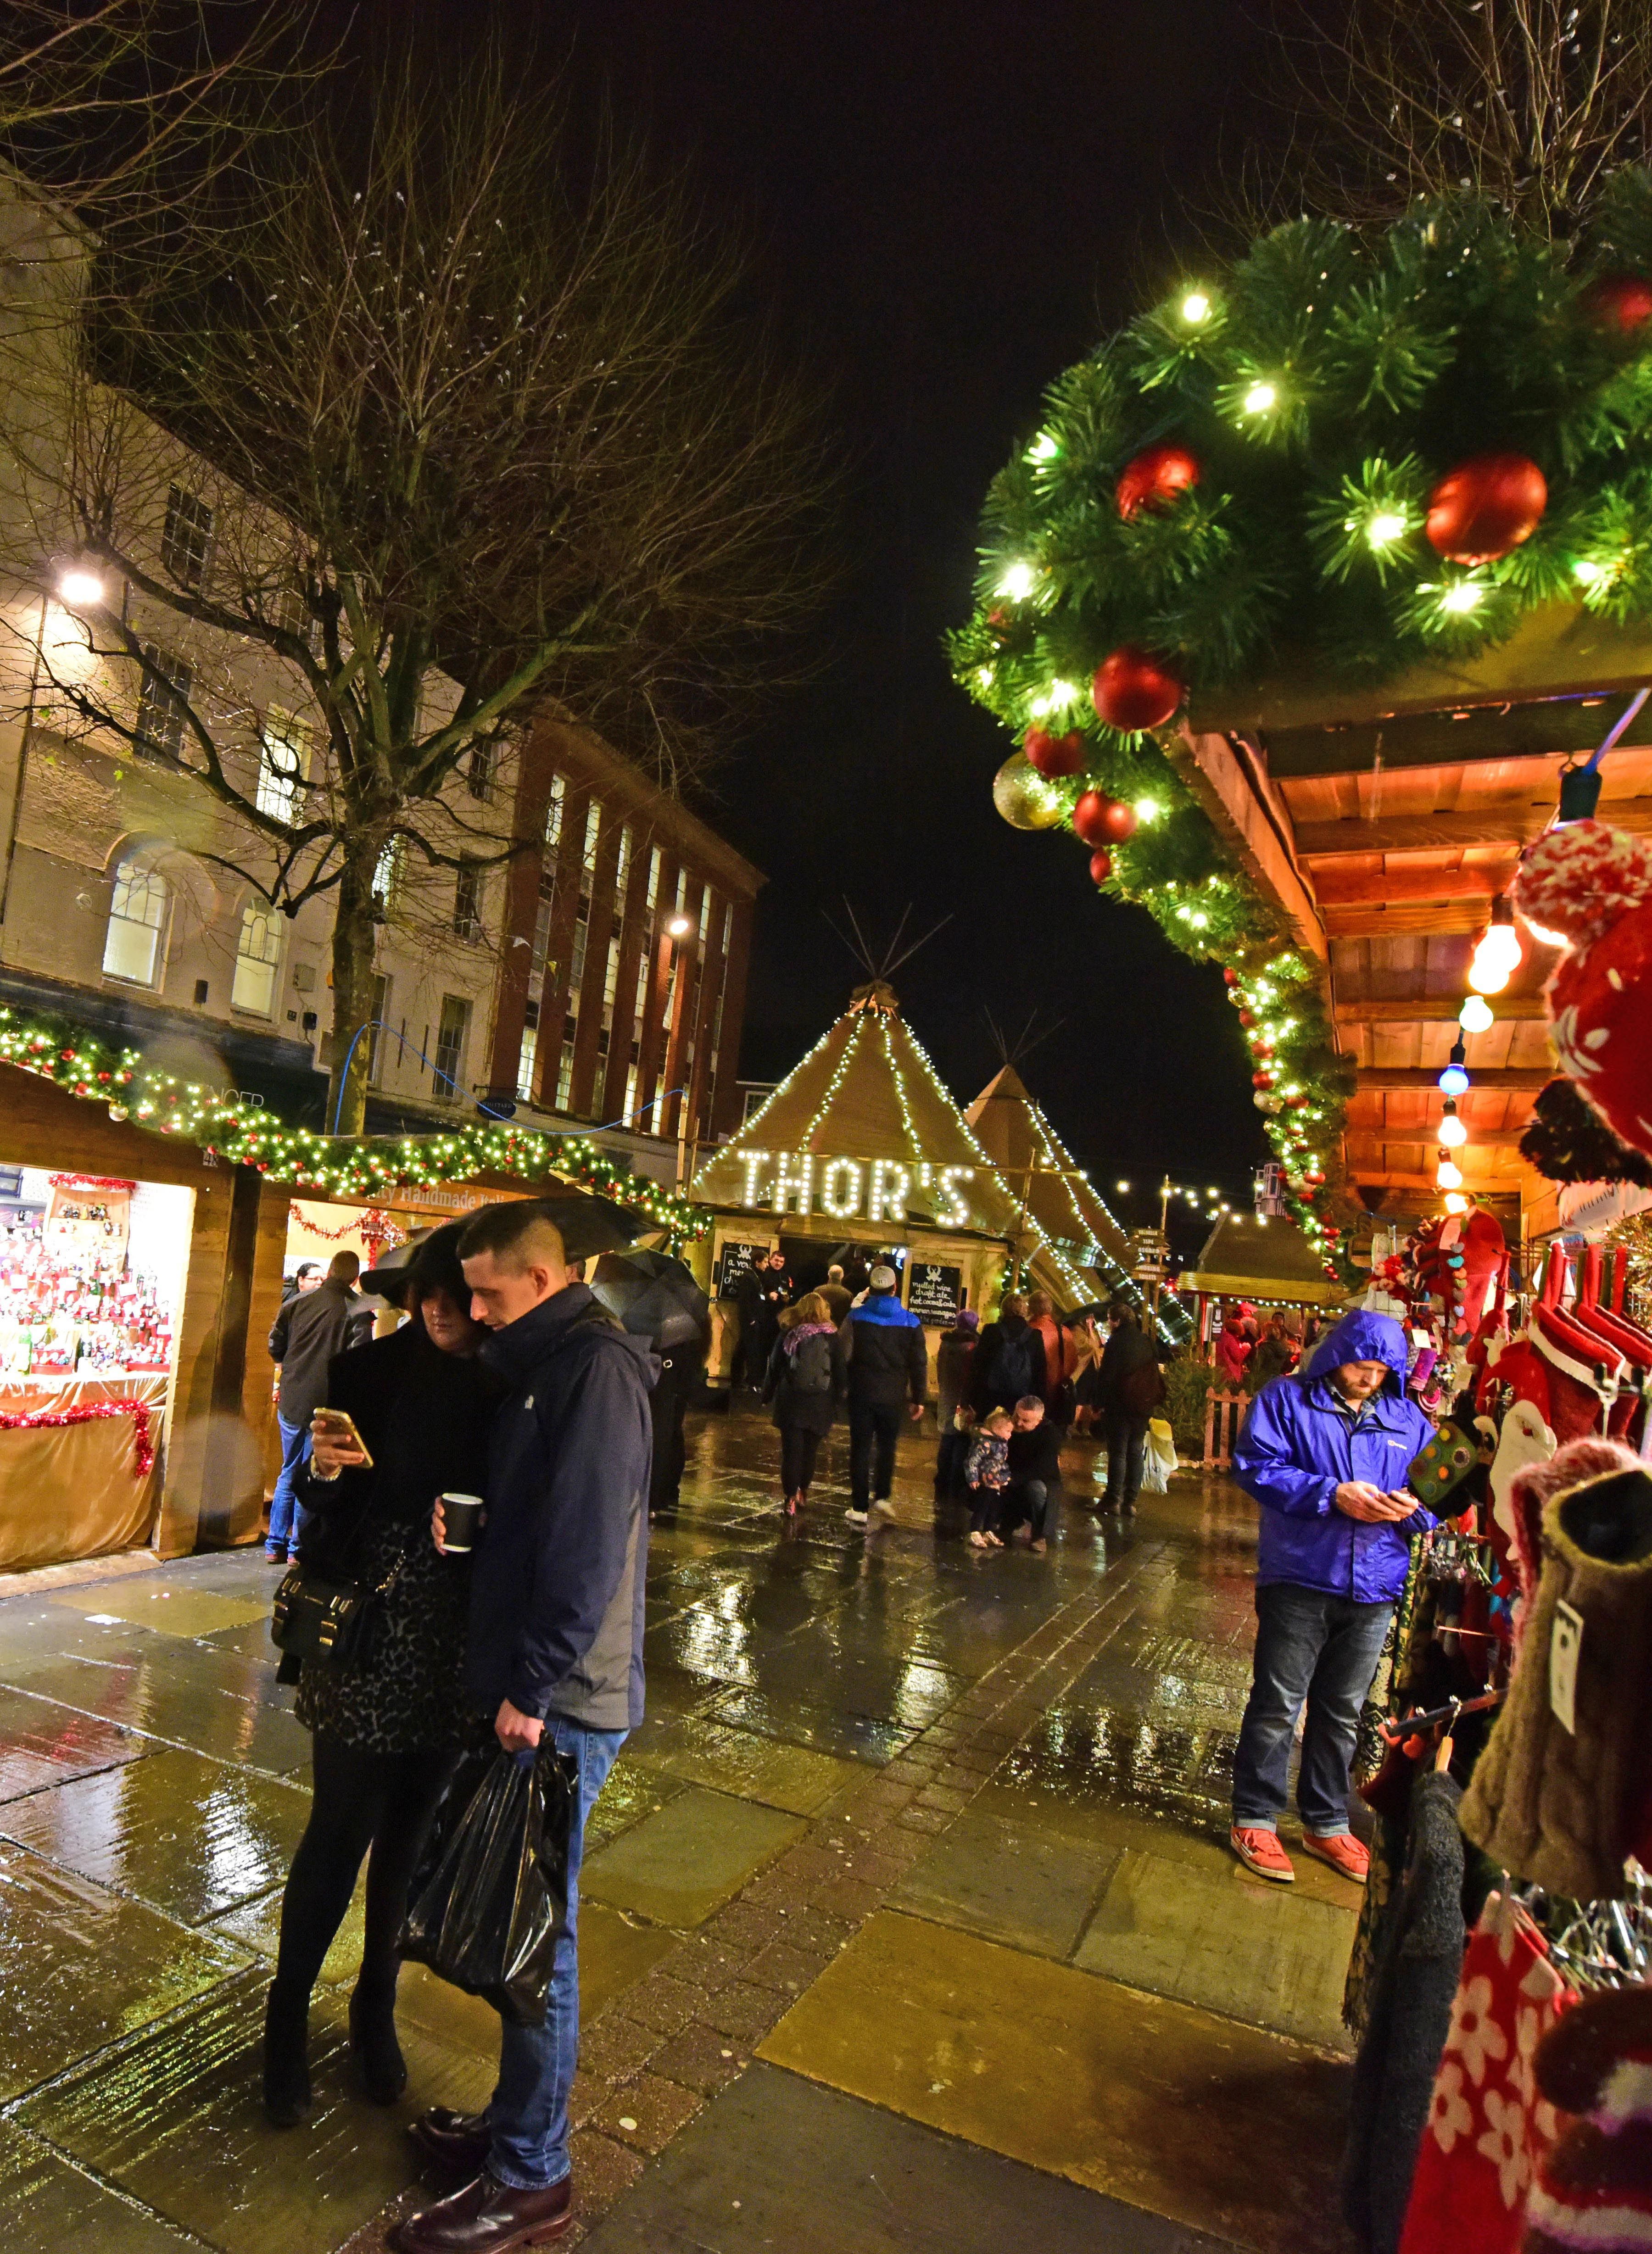 Christmas In England.The York Christmas Markets England Things To Do In 2019